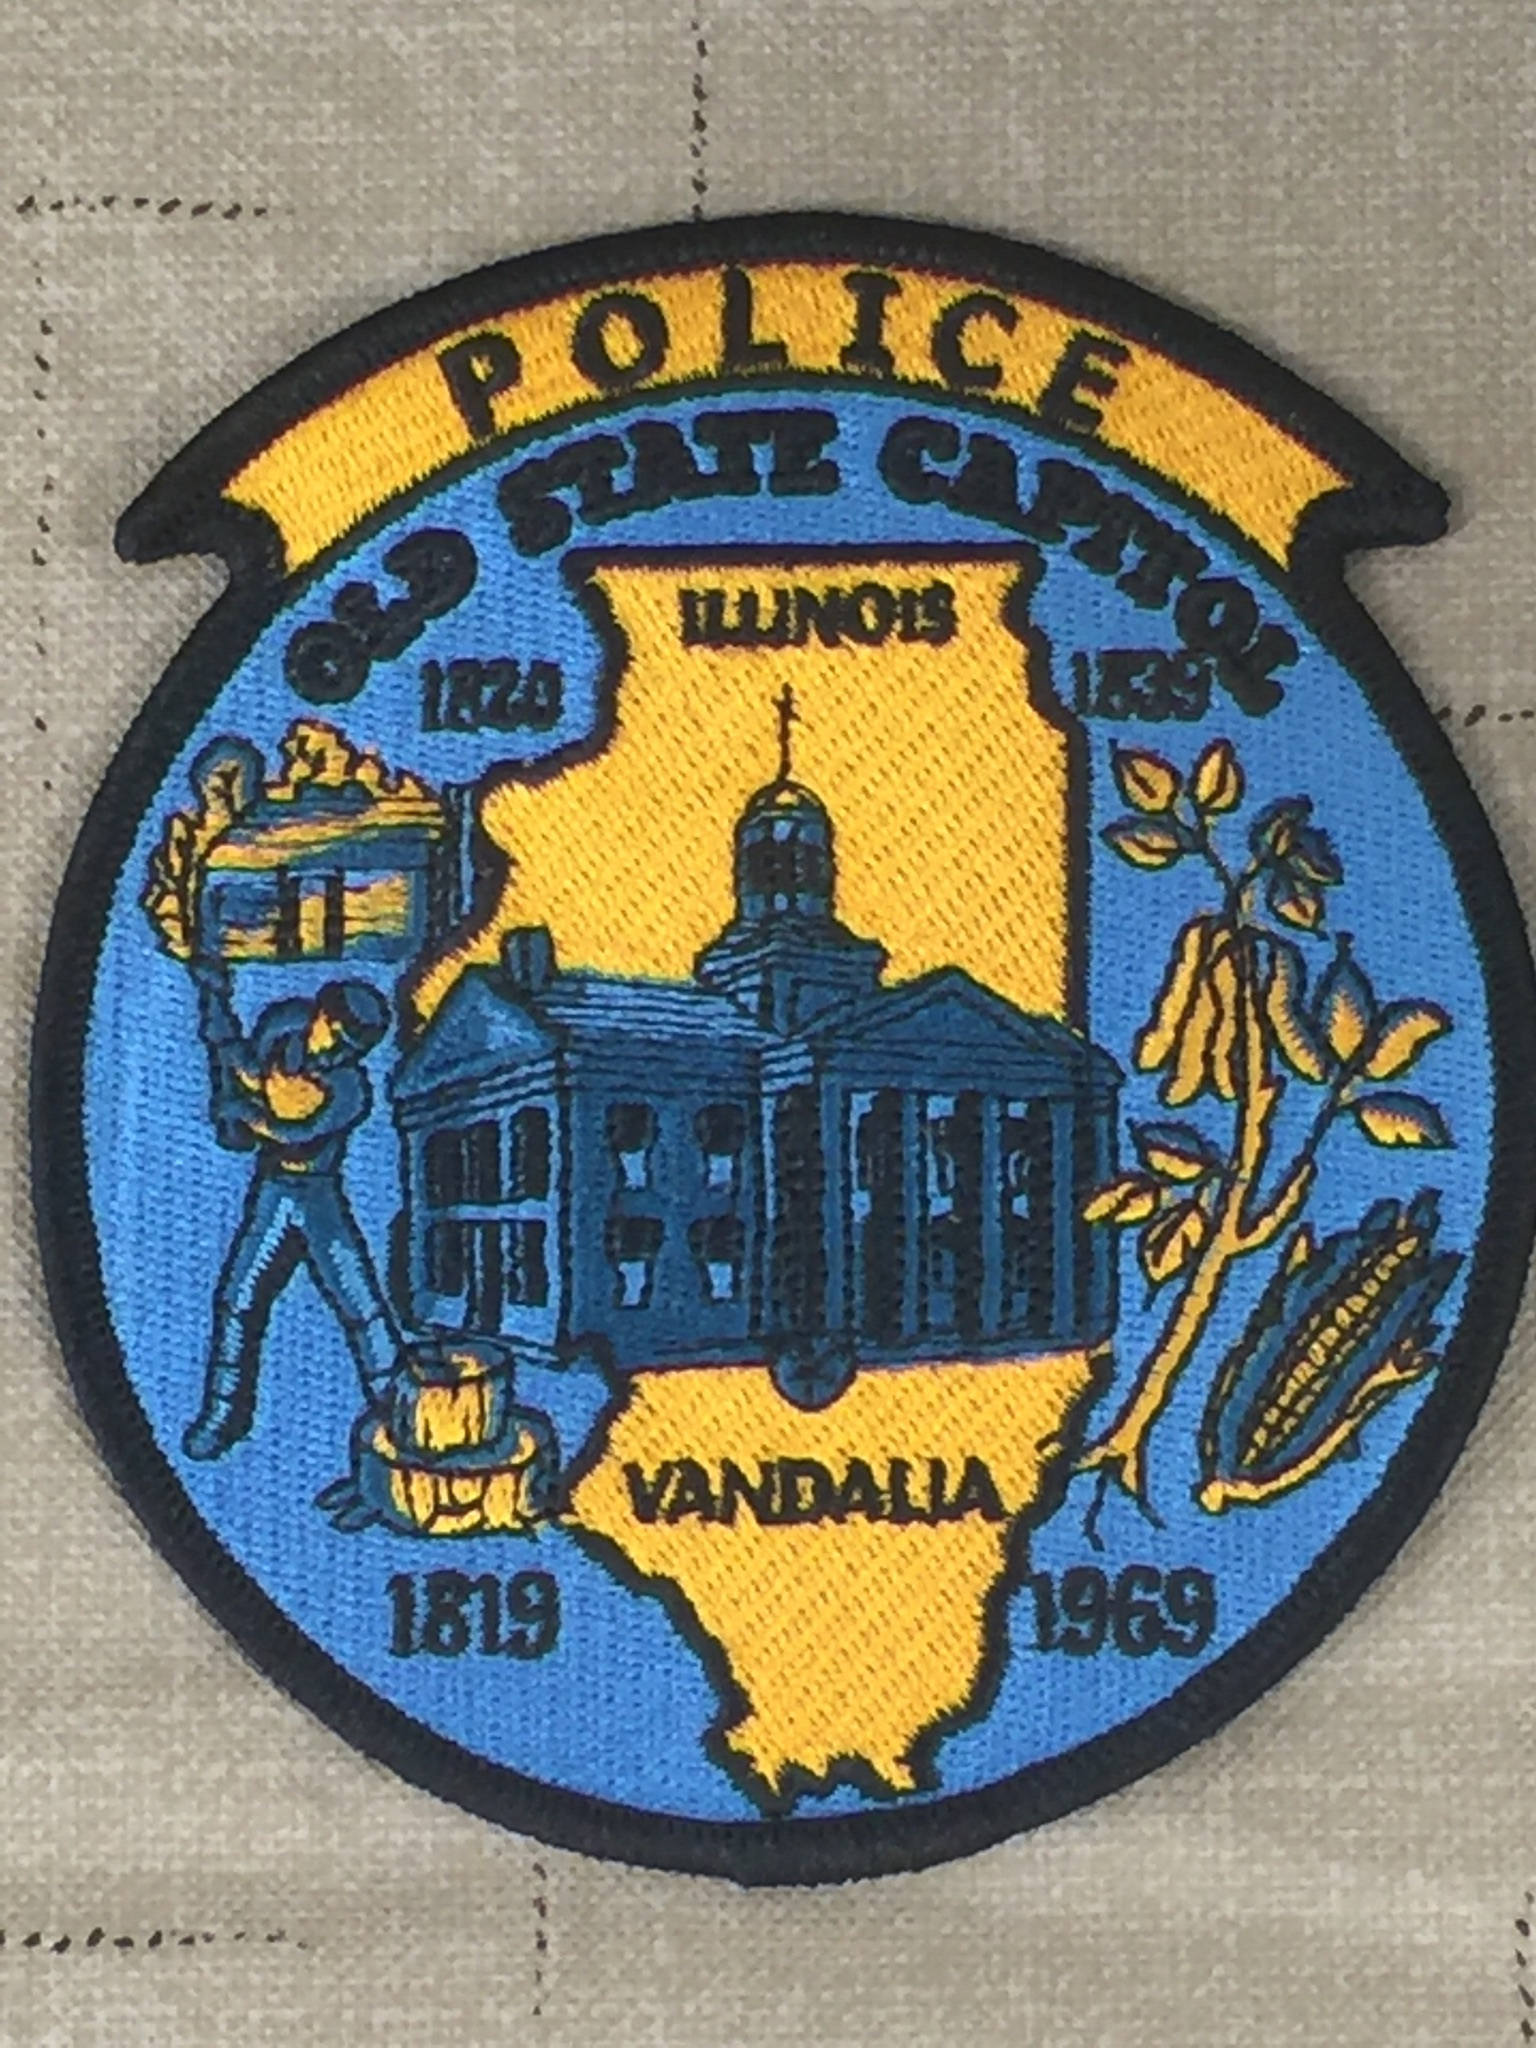 Vandalia PD investigating stolen vehicles, damage to a squad car